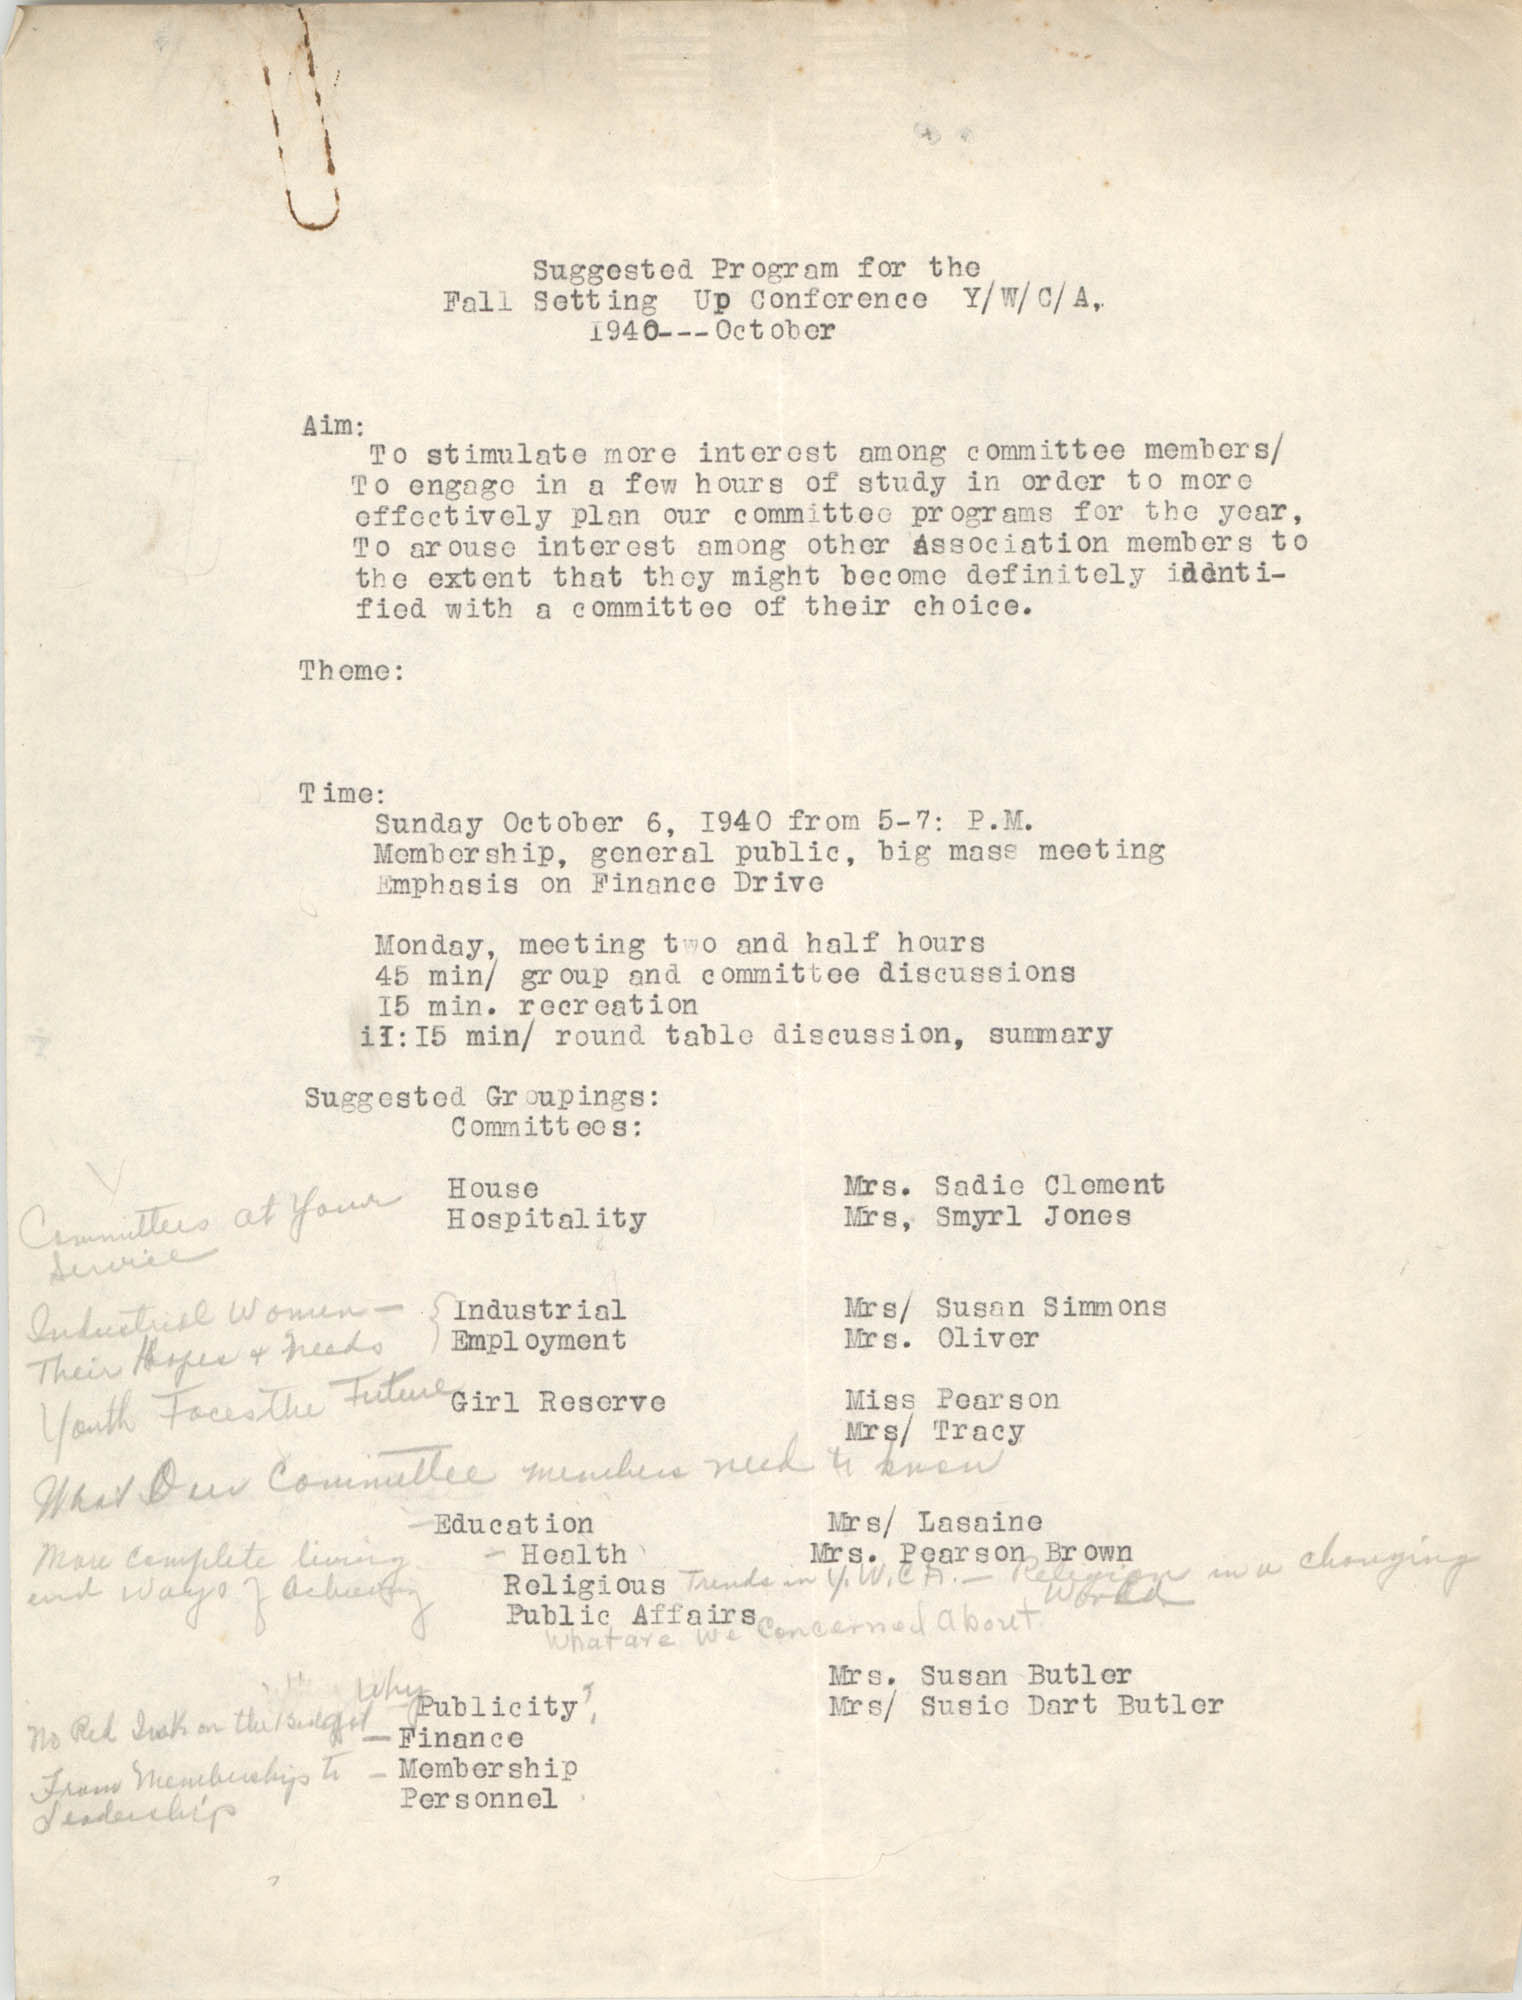 Monthly Report for the Coming Street Y.W.C.A., October 1940